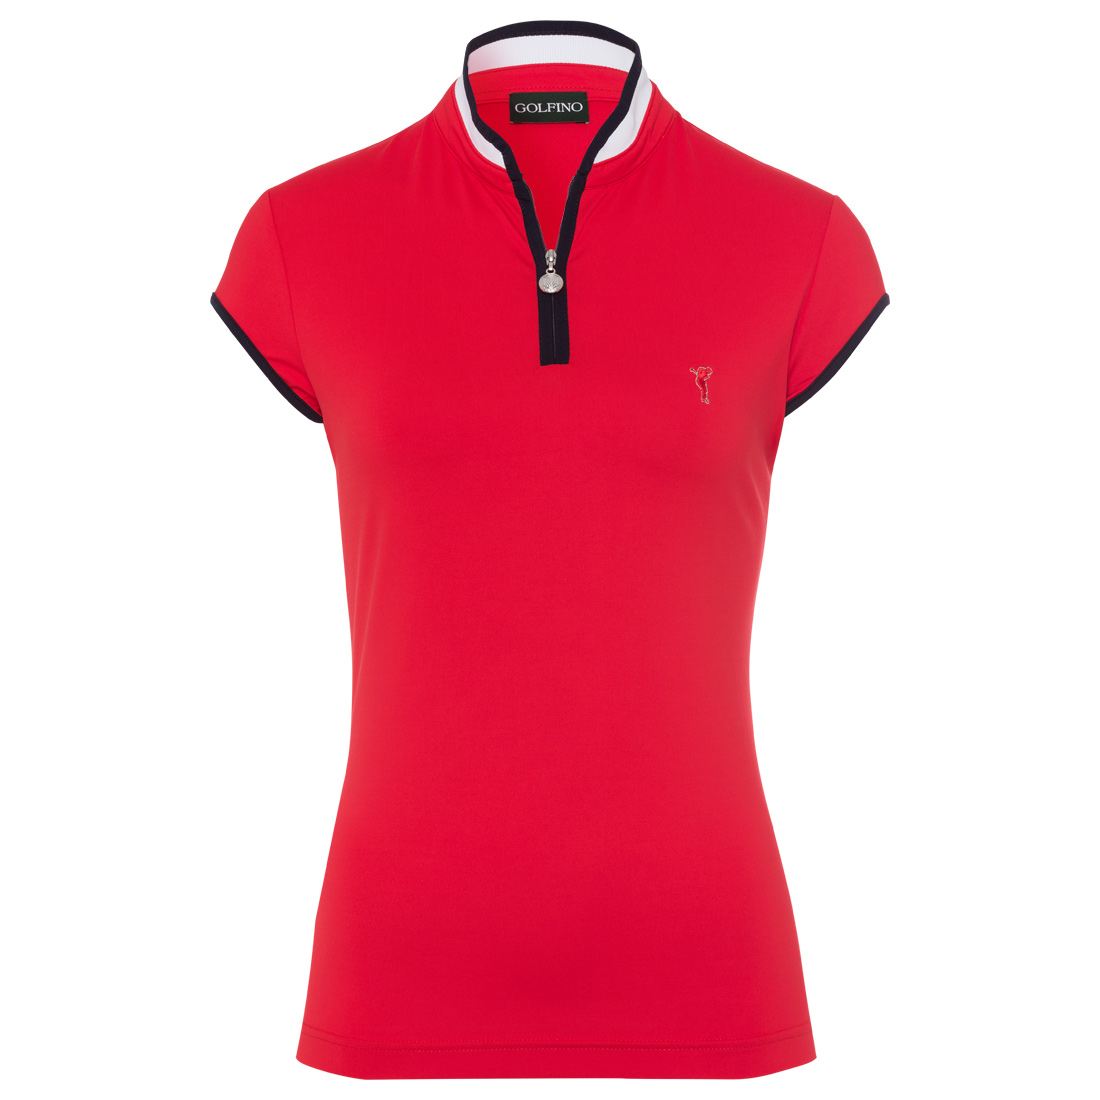 Ladies' short-sleeved half-zip